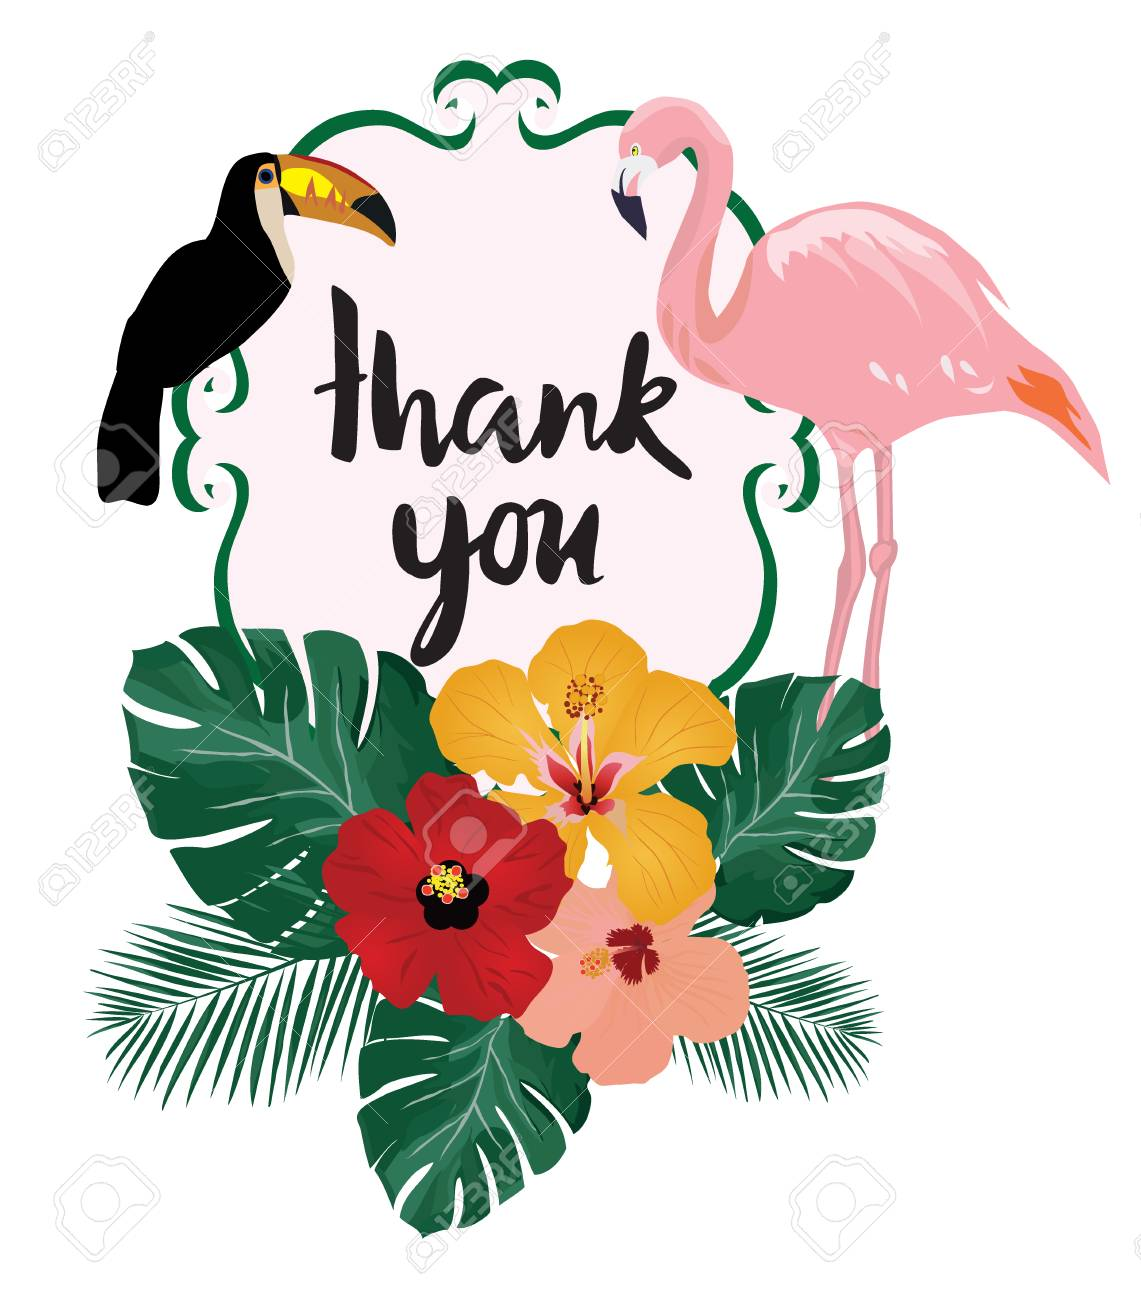 Vector Illustration Of Thank You Card Note With Birds Flamingo